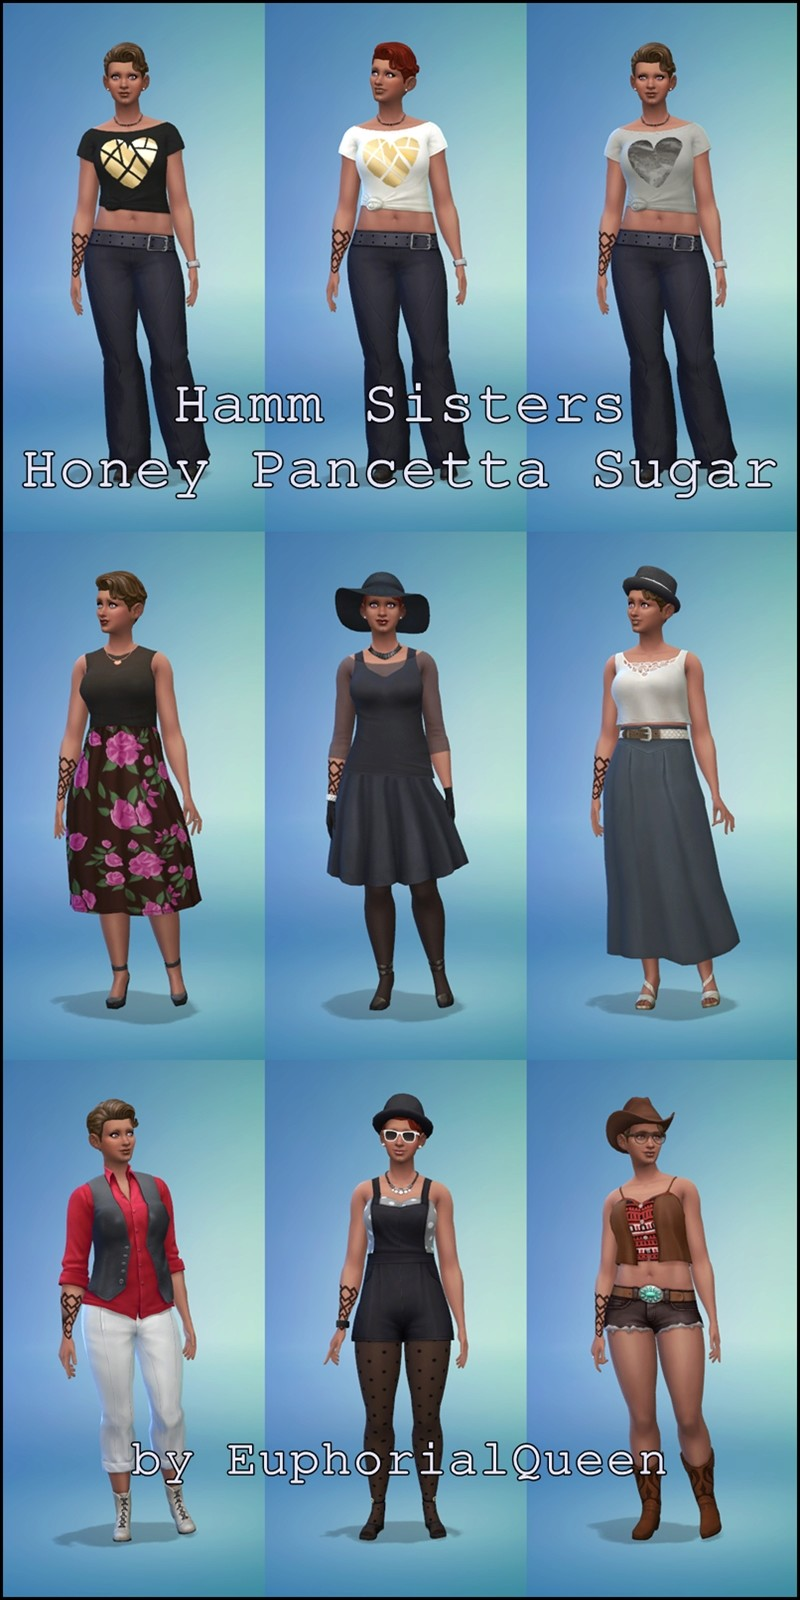 **The Sims 4 Three Little Sims Challenge** Revised as 3 Little Sims for Sims 4 Hamm_s10